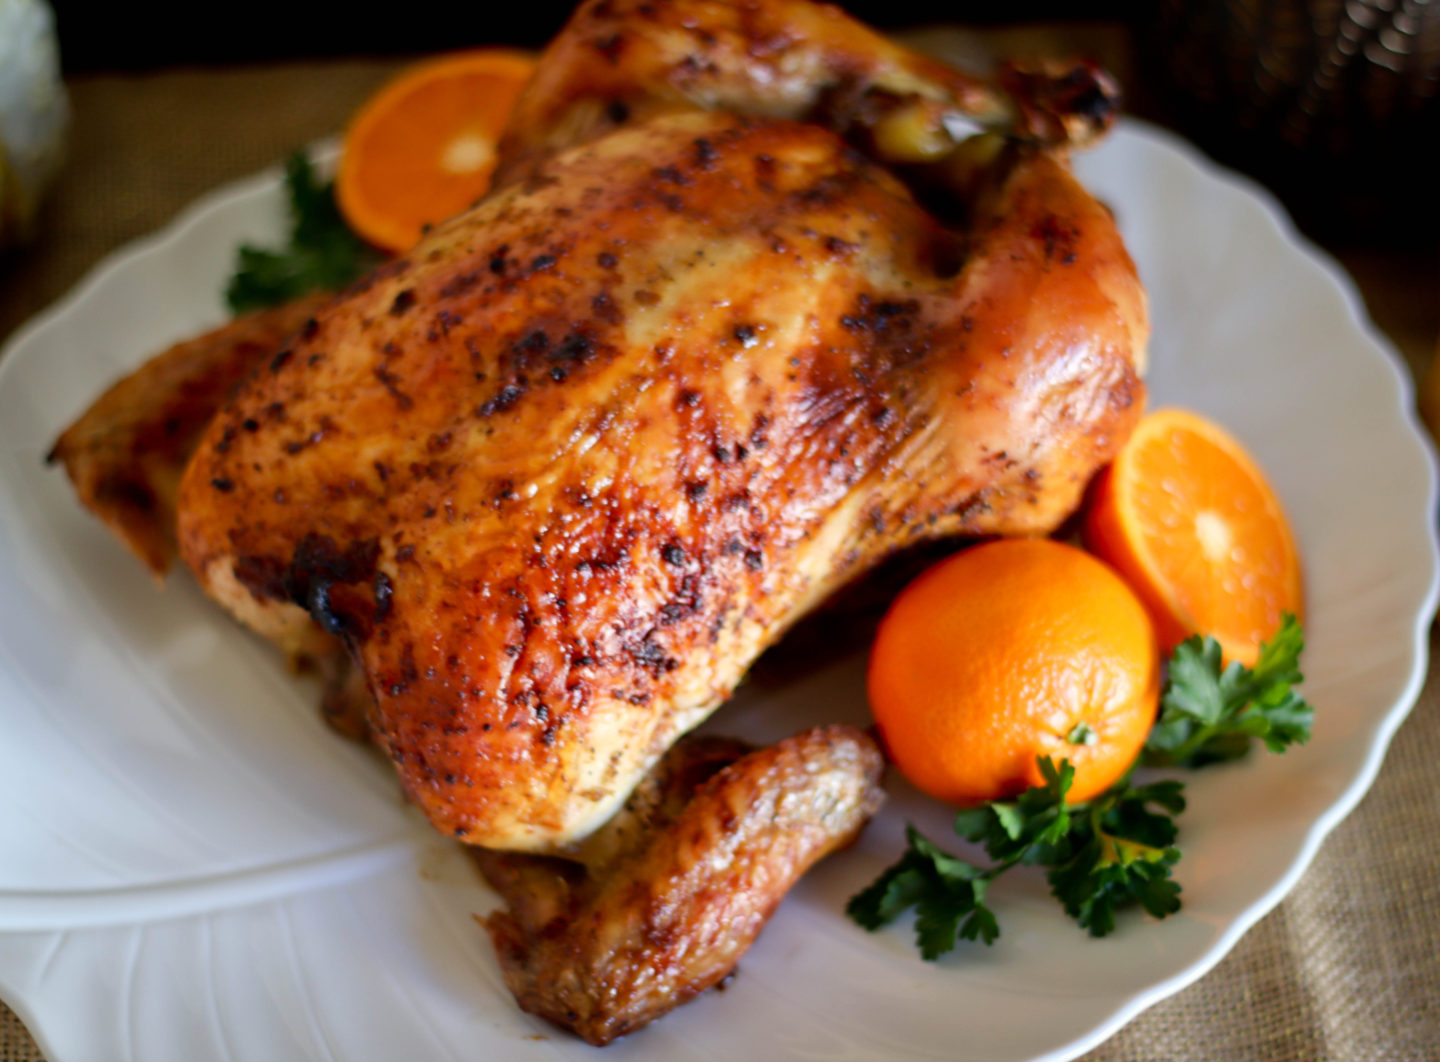 DRY BRINED ROASTED CHICKEN